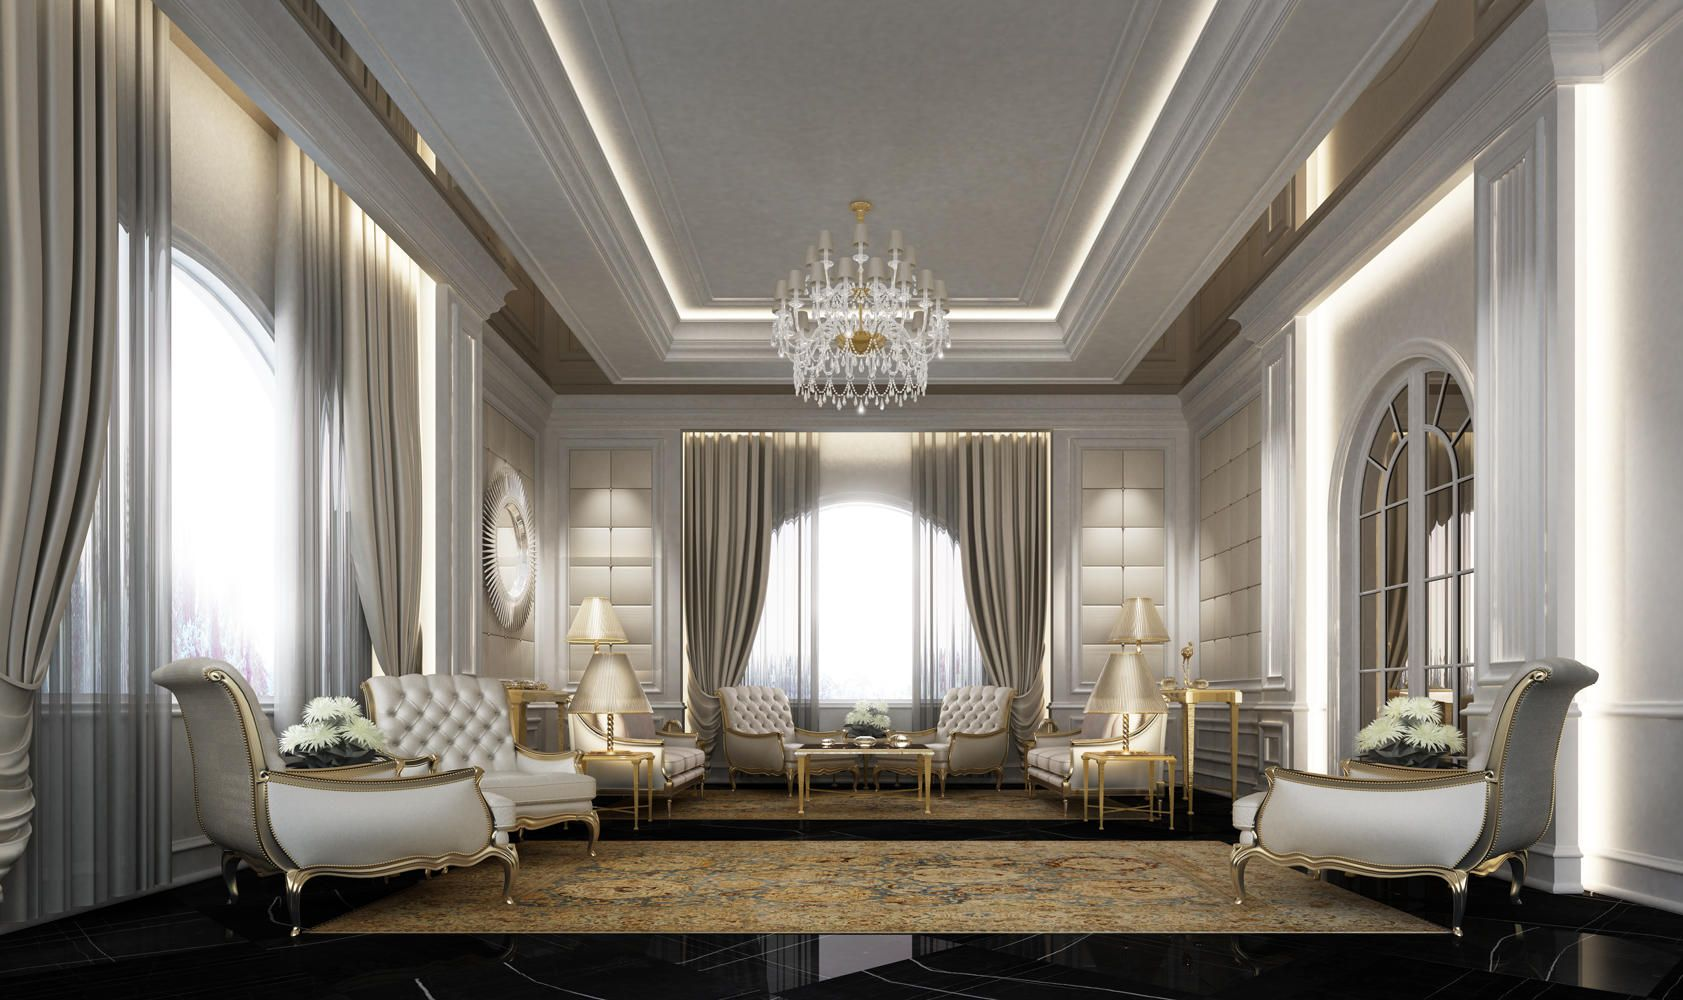 Arabic majlis designs ions design interior design for Modern home decor dubai